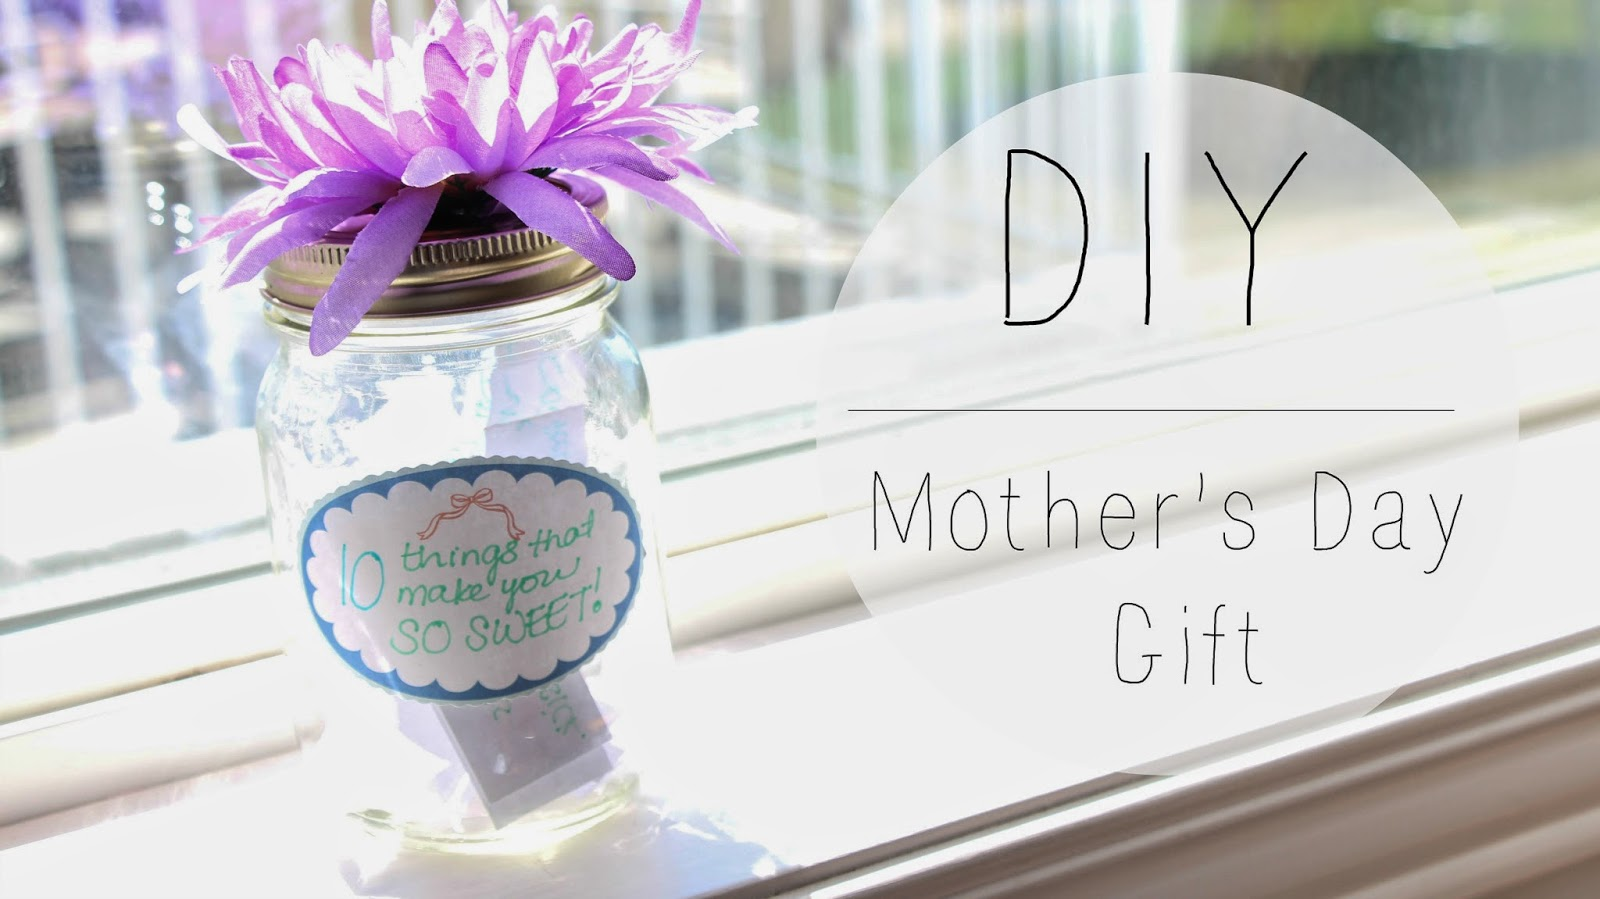 Jennsphilosophy Diy Mother 39 S Day Gift 10 Things That